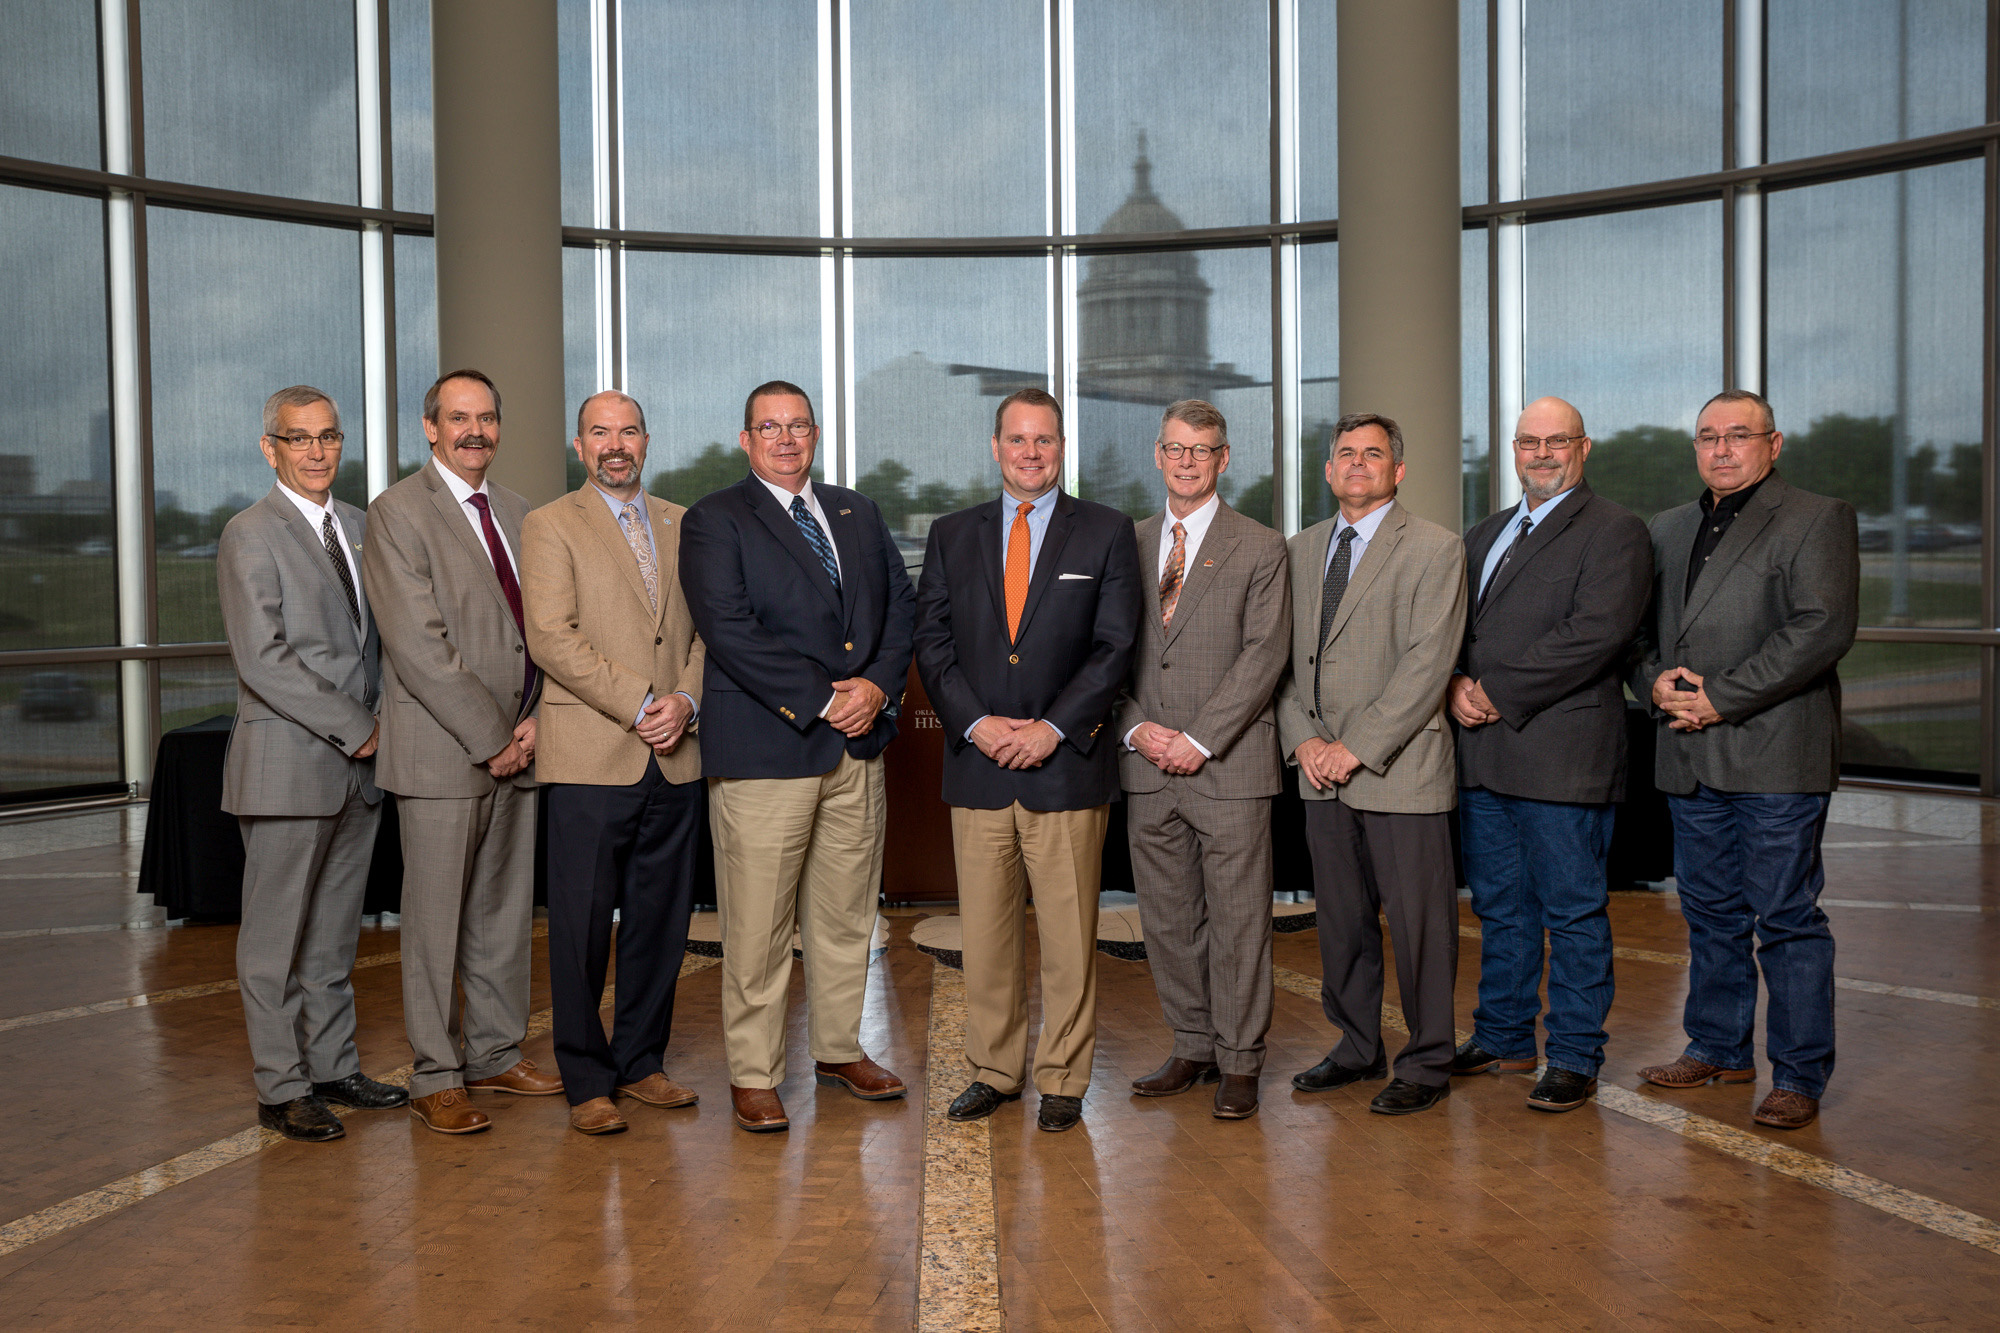 OSU represented on statewide conservation task force